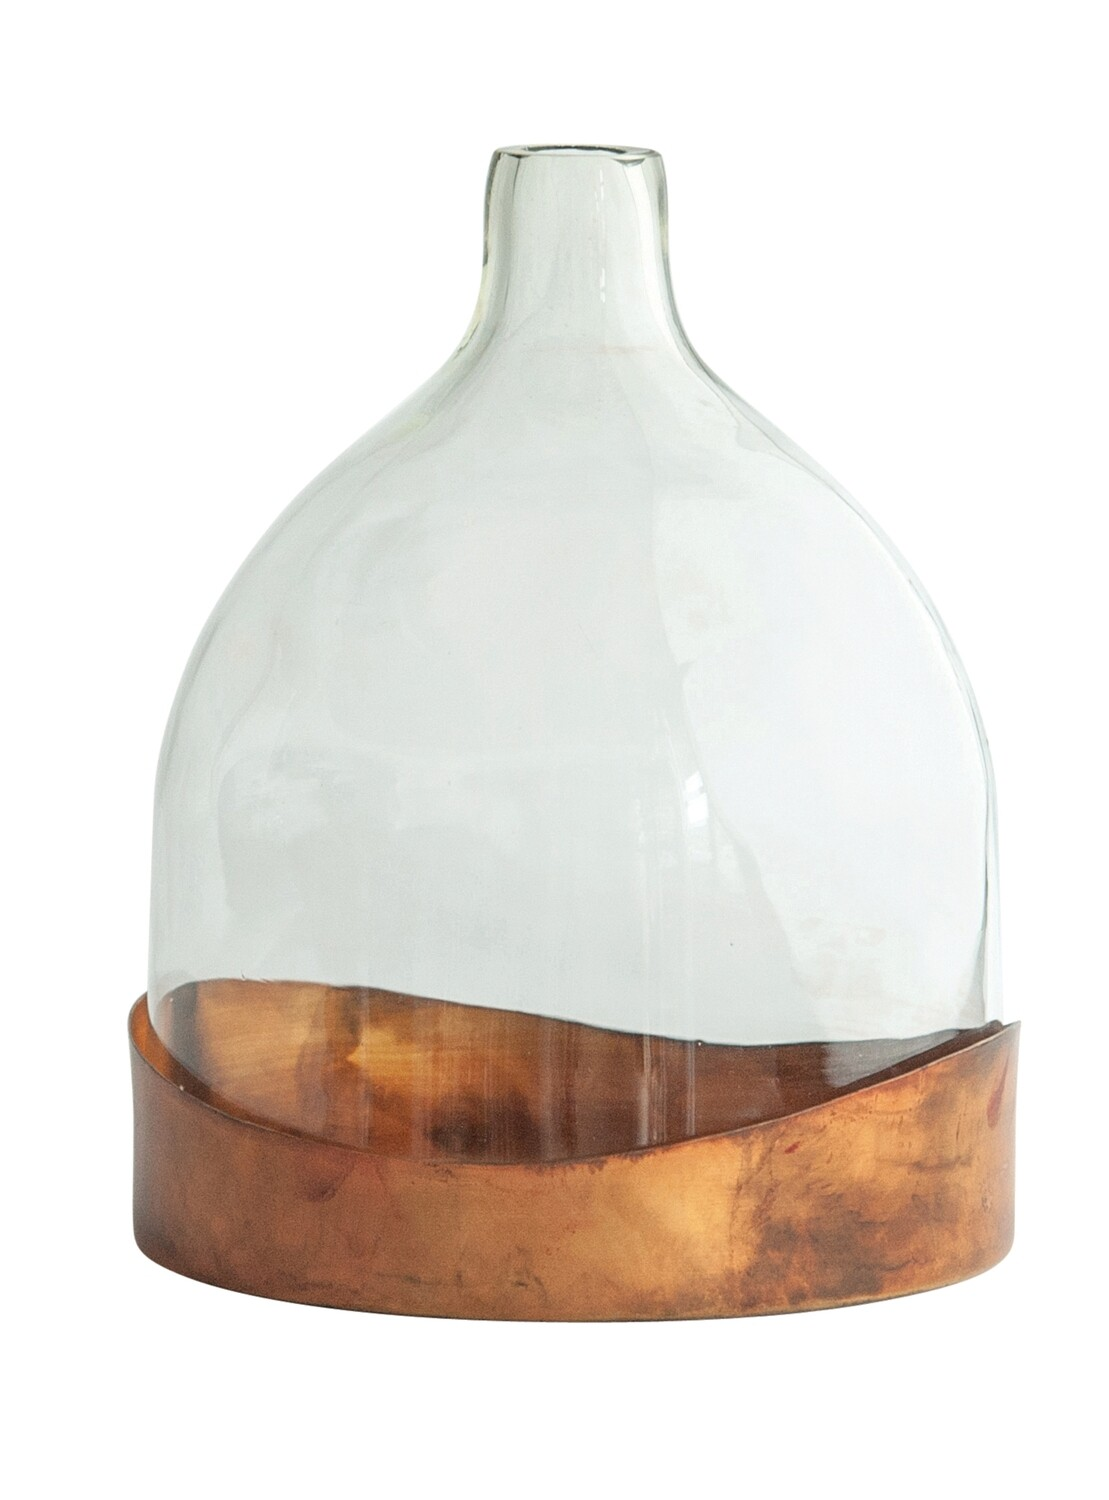 Glass Cloche with Antique Copper Tray